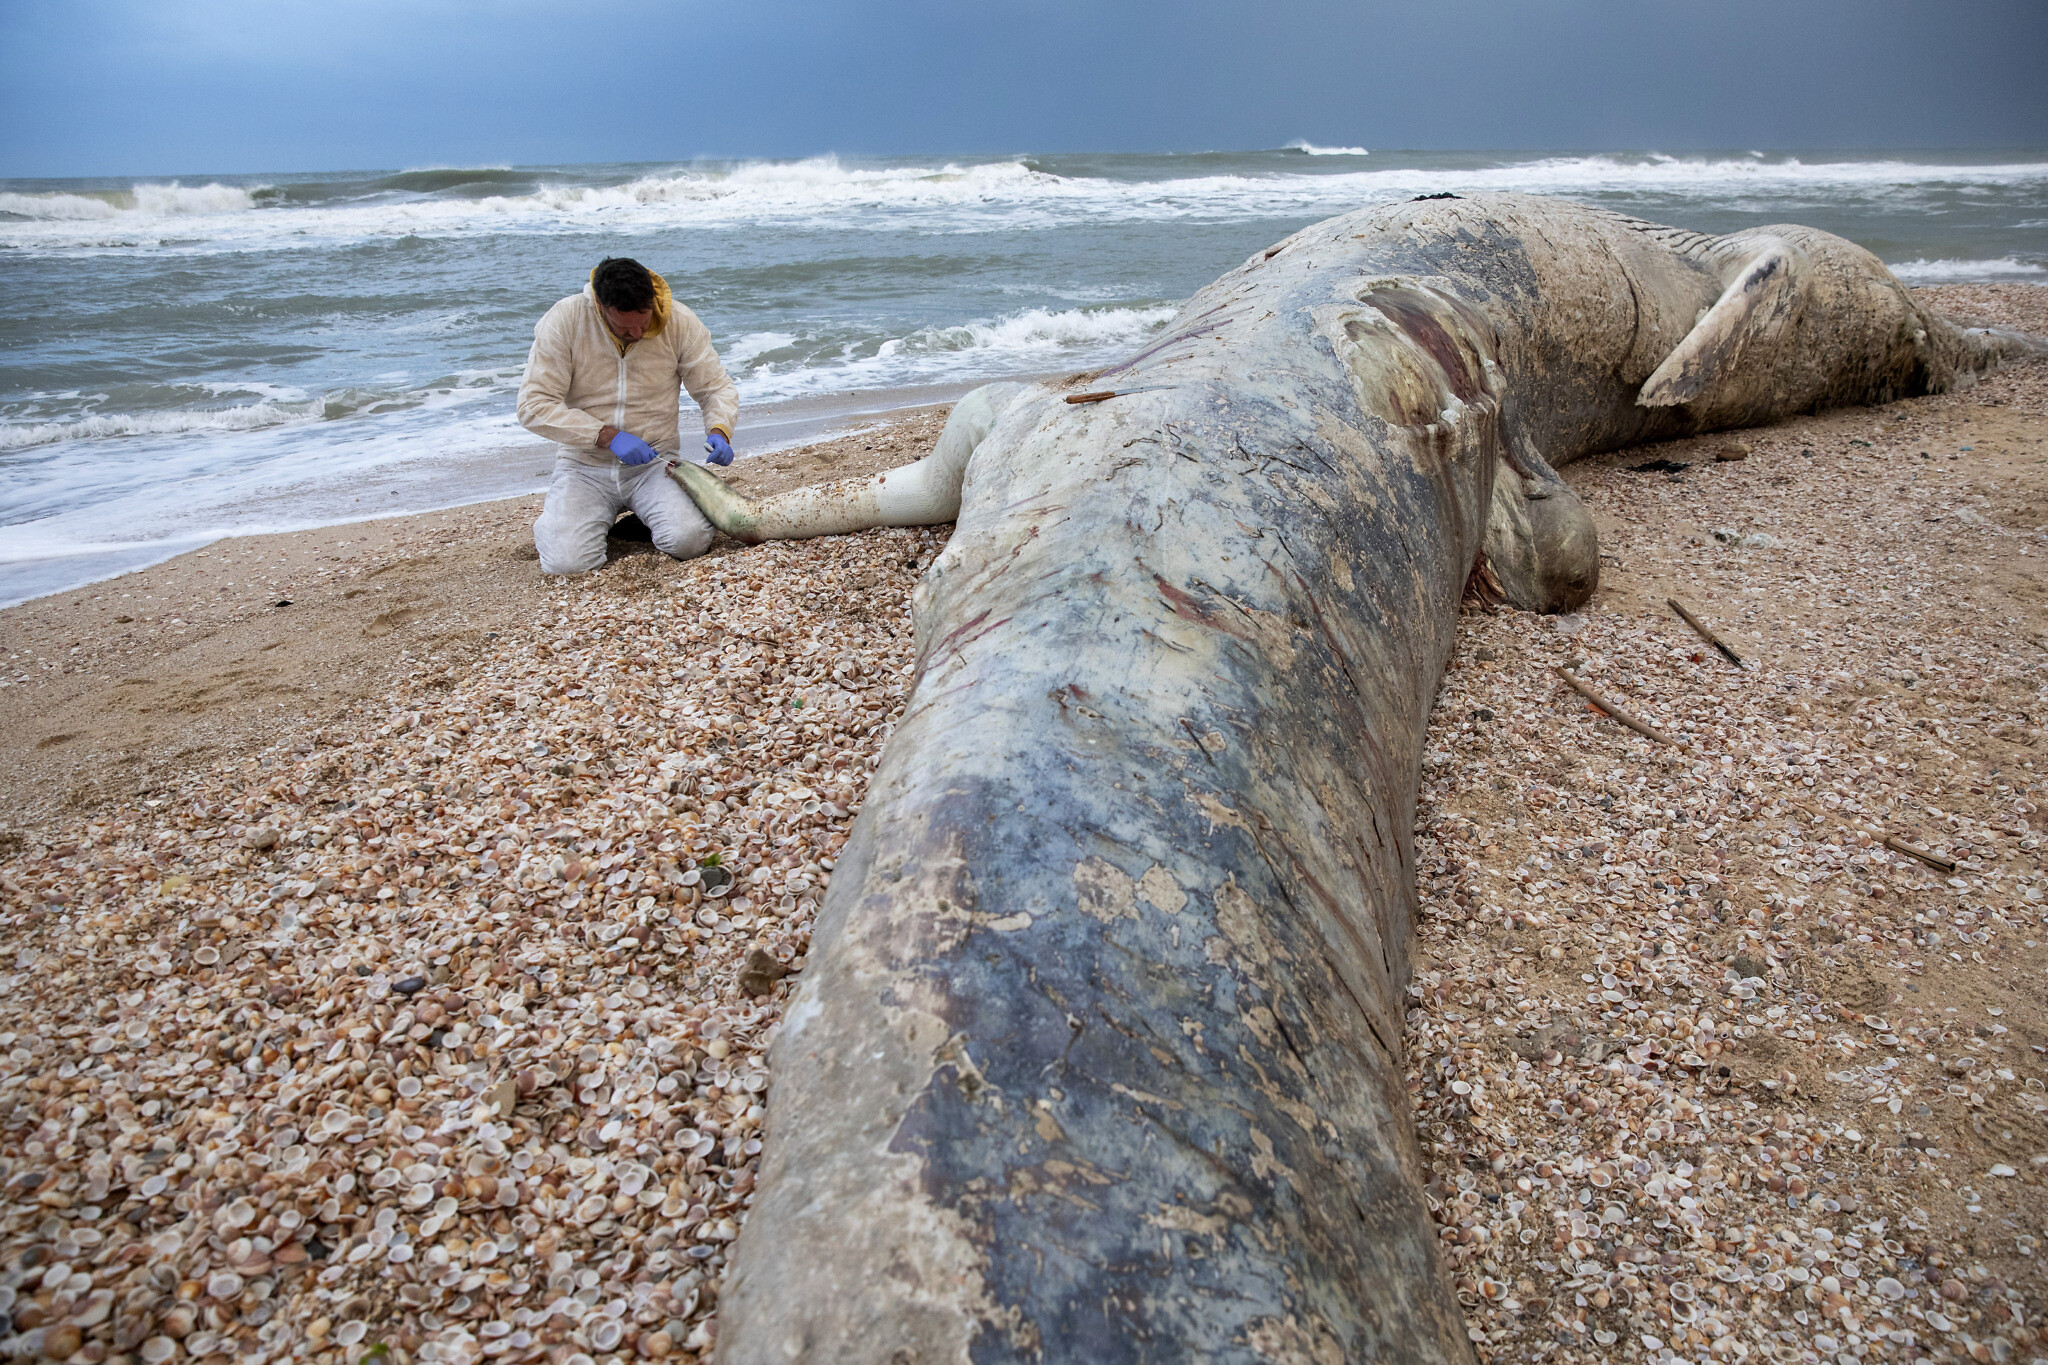 17-meter young whale found dead on beach in south Israel amid possible tar  spill